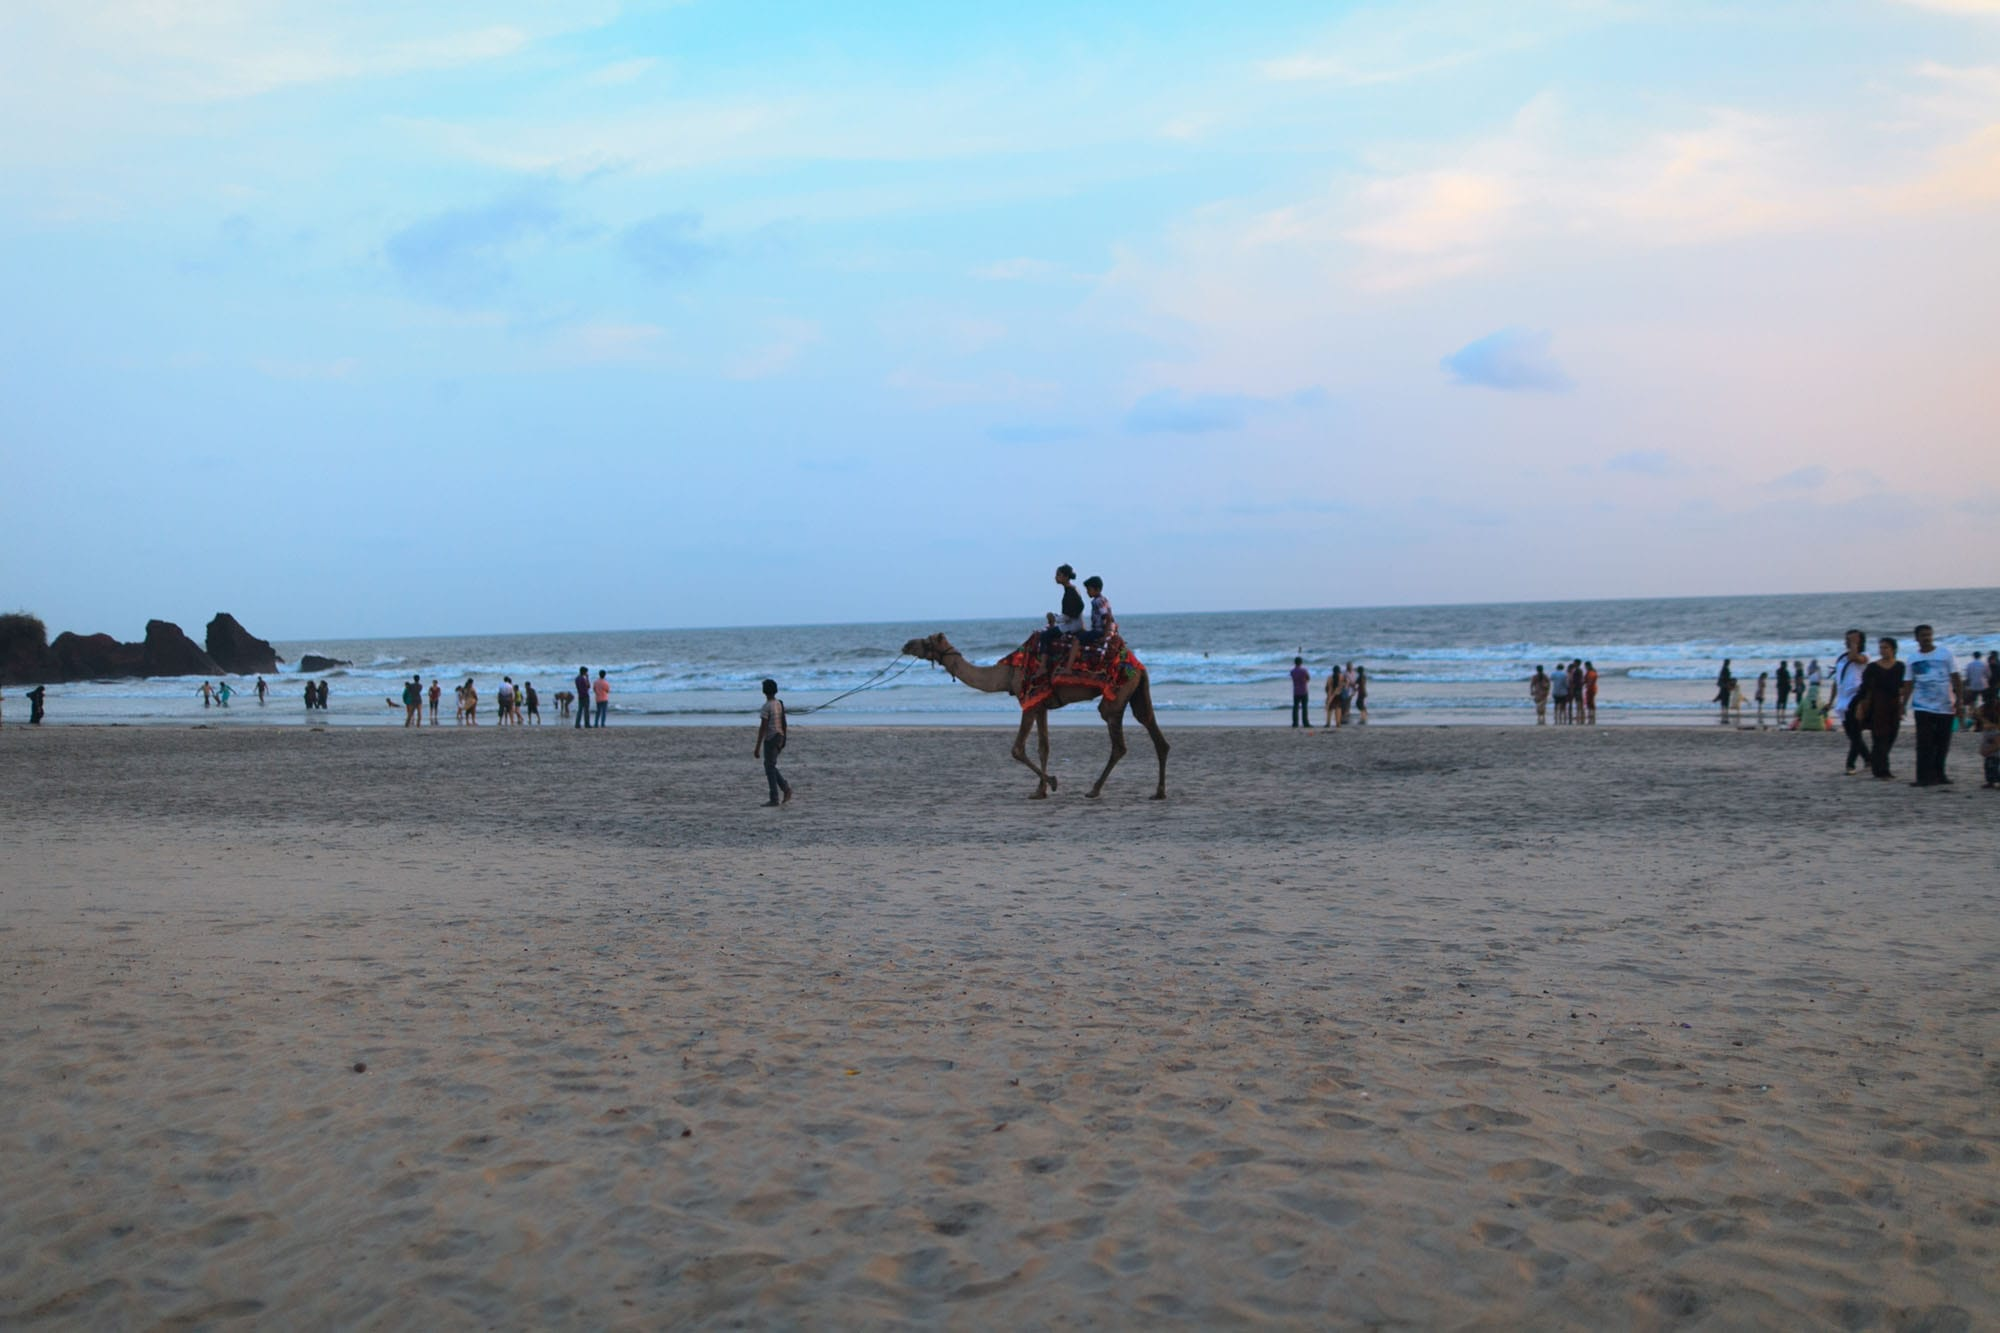 Beach in Kannur, India.